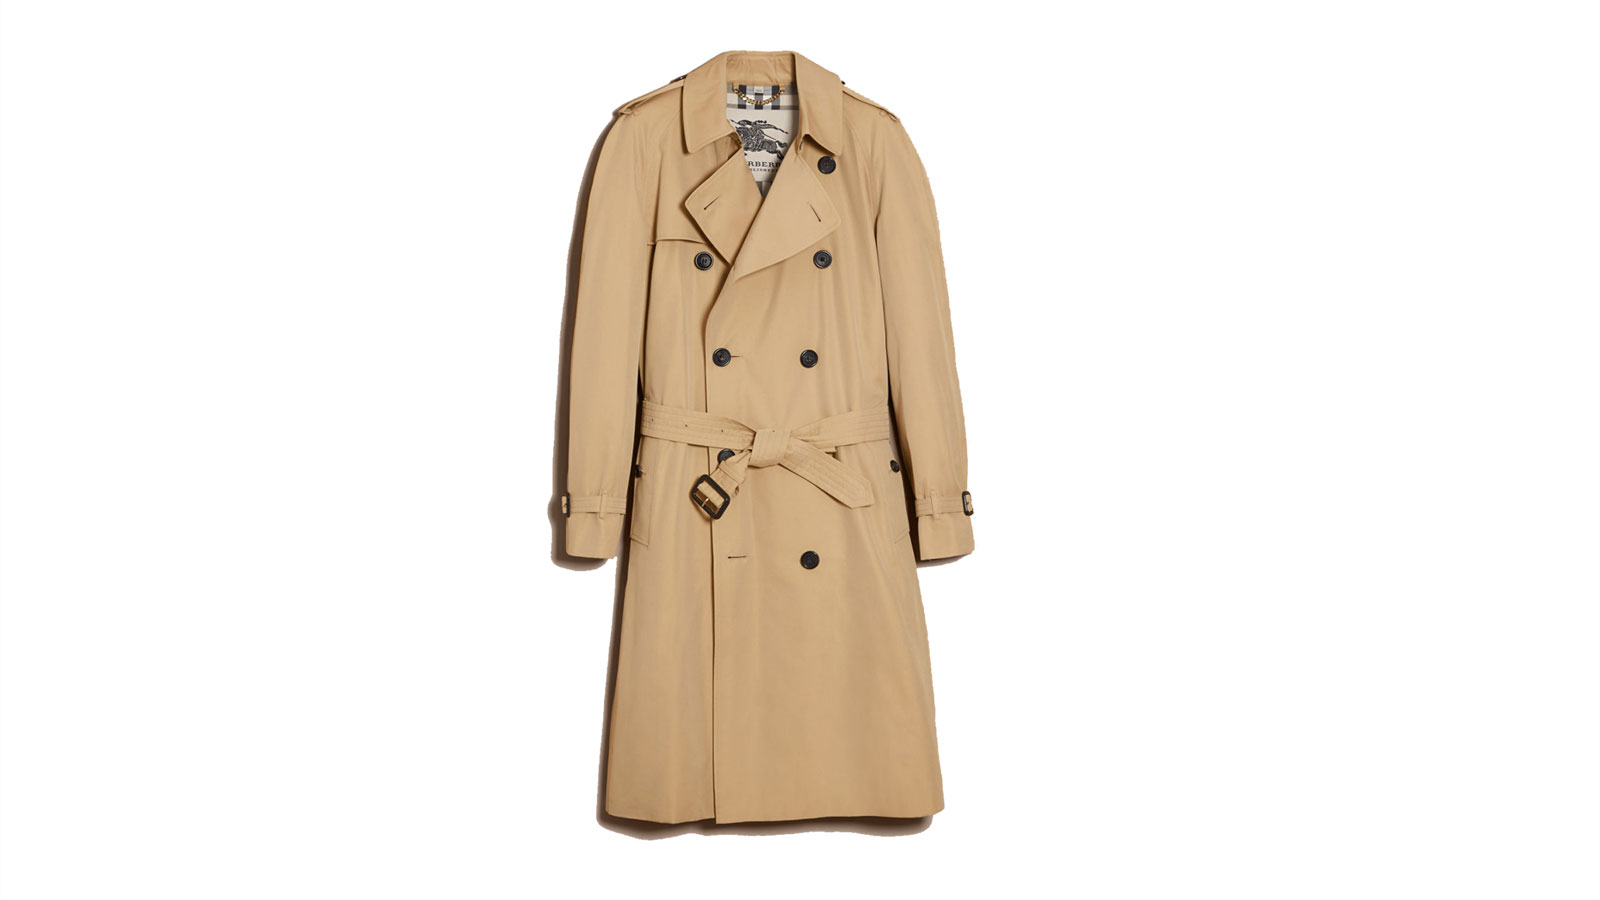 Burberry Mens Westminster Trench Coat   The Best Men's Trench Coats